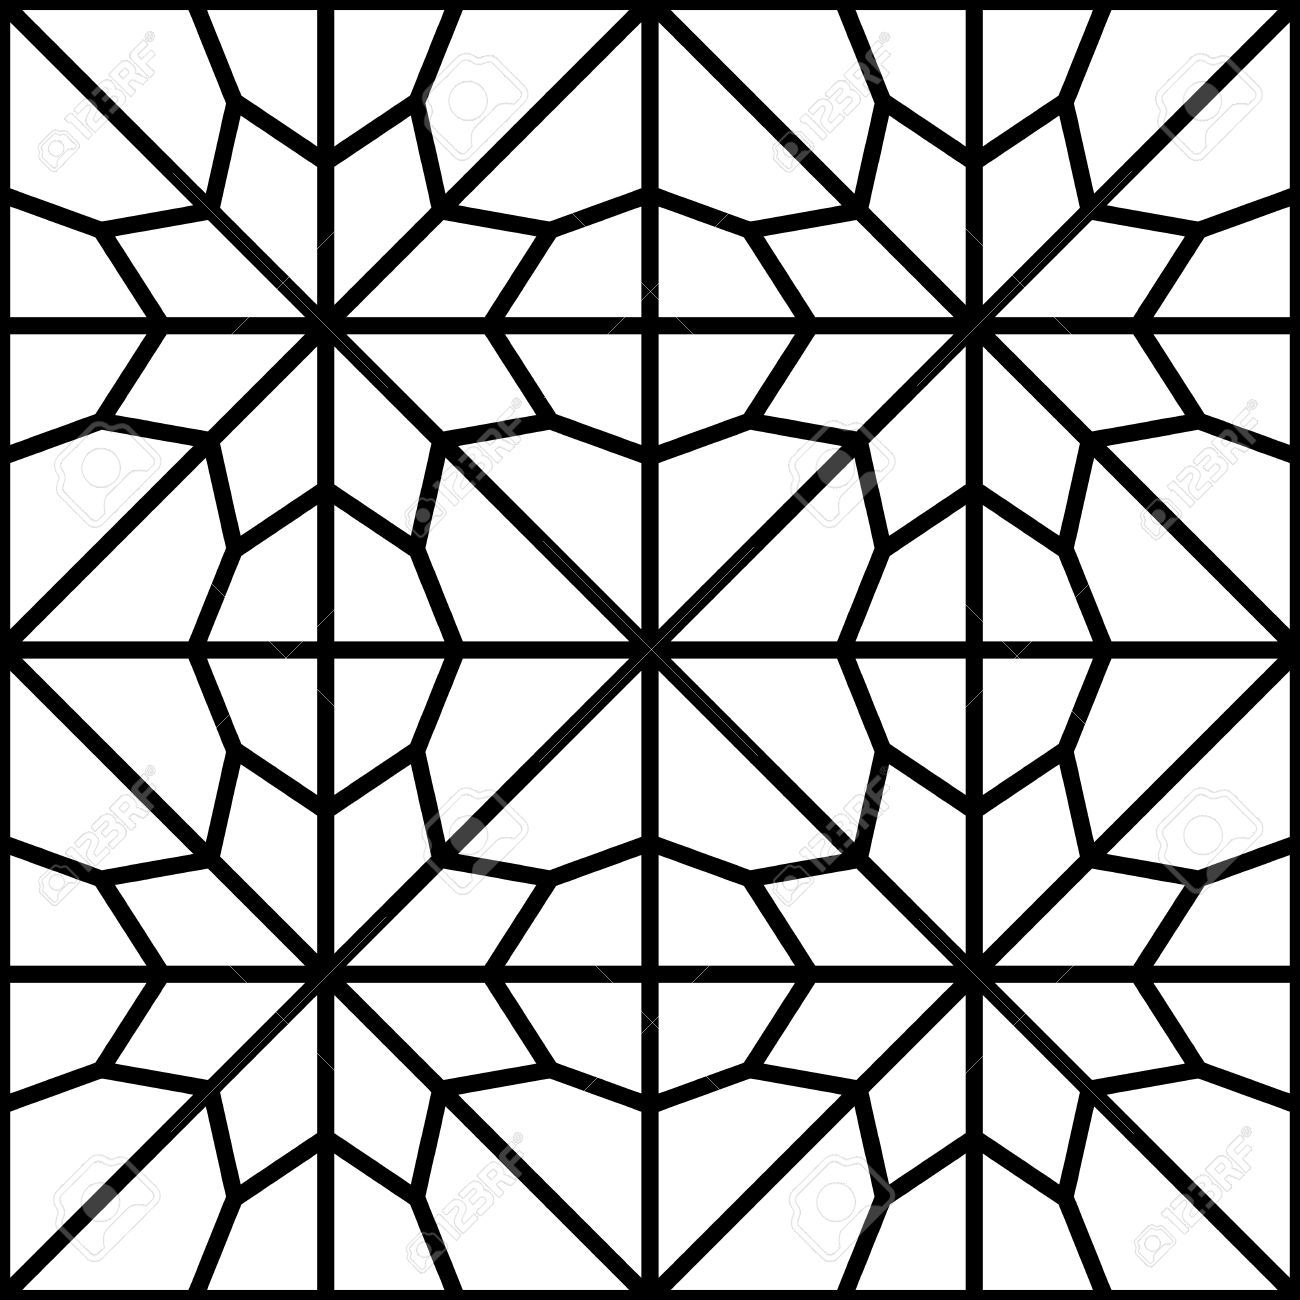 Pin by Tatum Sinclair on floors | Pinterest for Simple Islamic Designs  8lpfiz